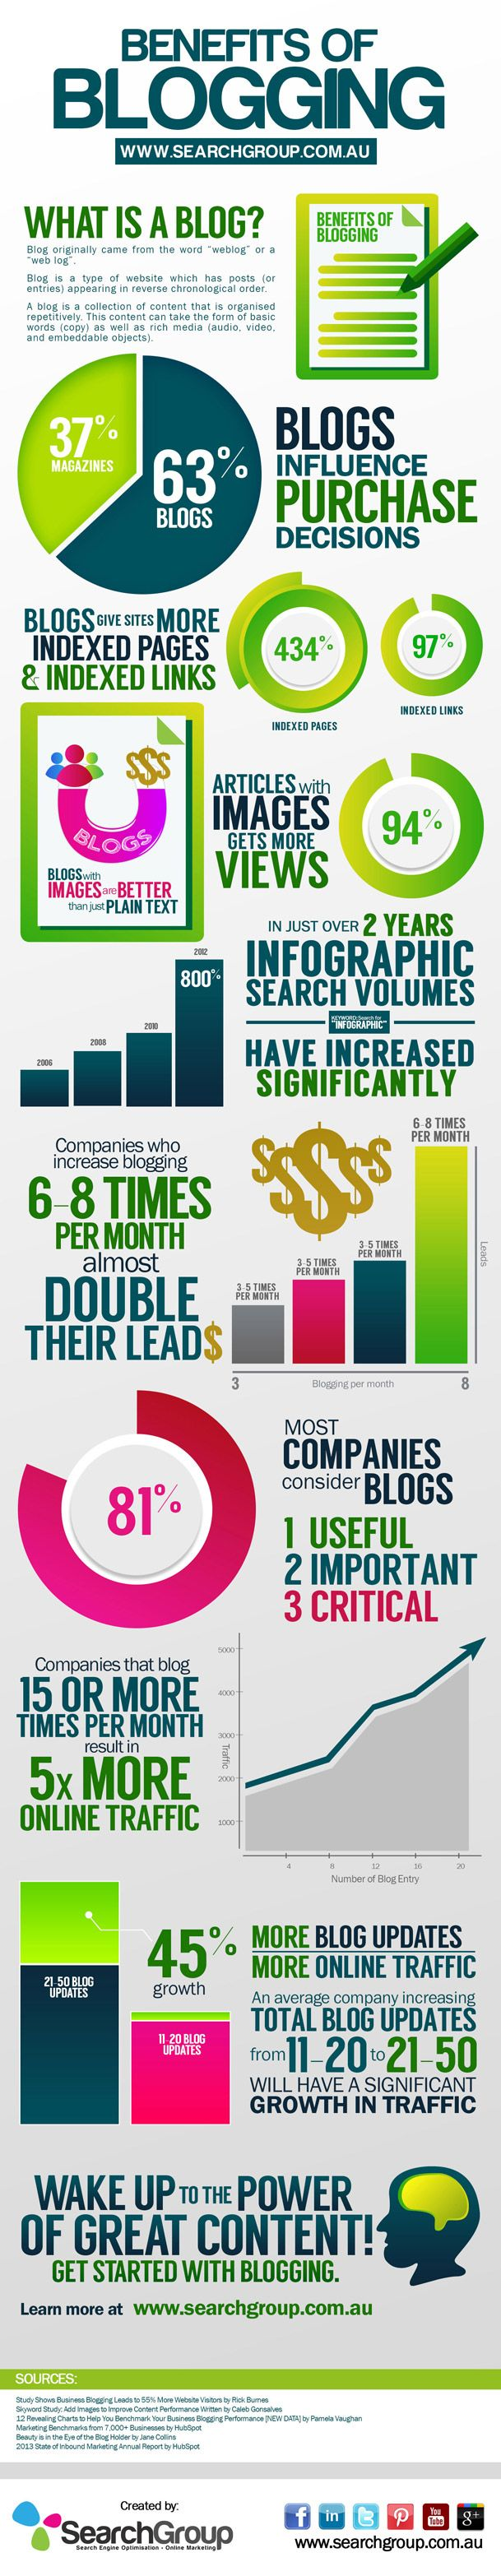 Benefits of Blogging #Infographic: Blog Infographic, Digital Marketing, Benefits Of, Blog Tips, Social Media, Engine Optimism, Blog Ideas, Search Engine Optimization, Socialmedia